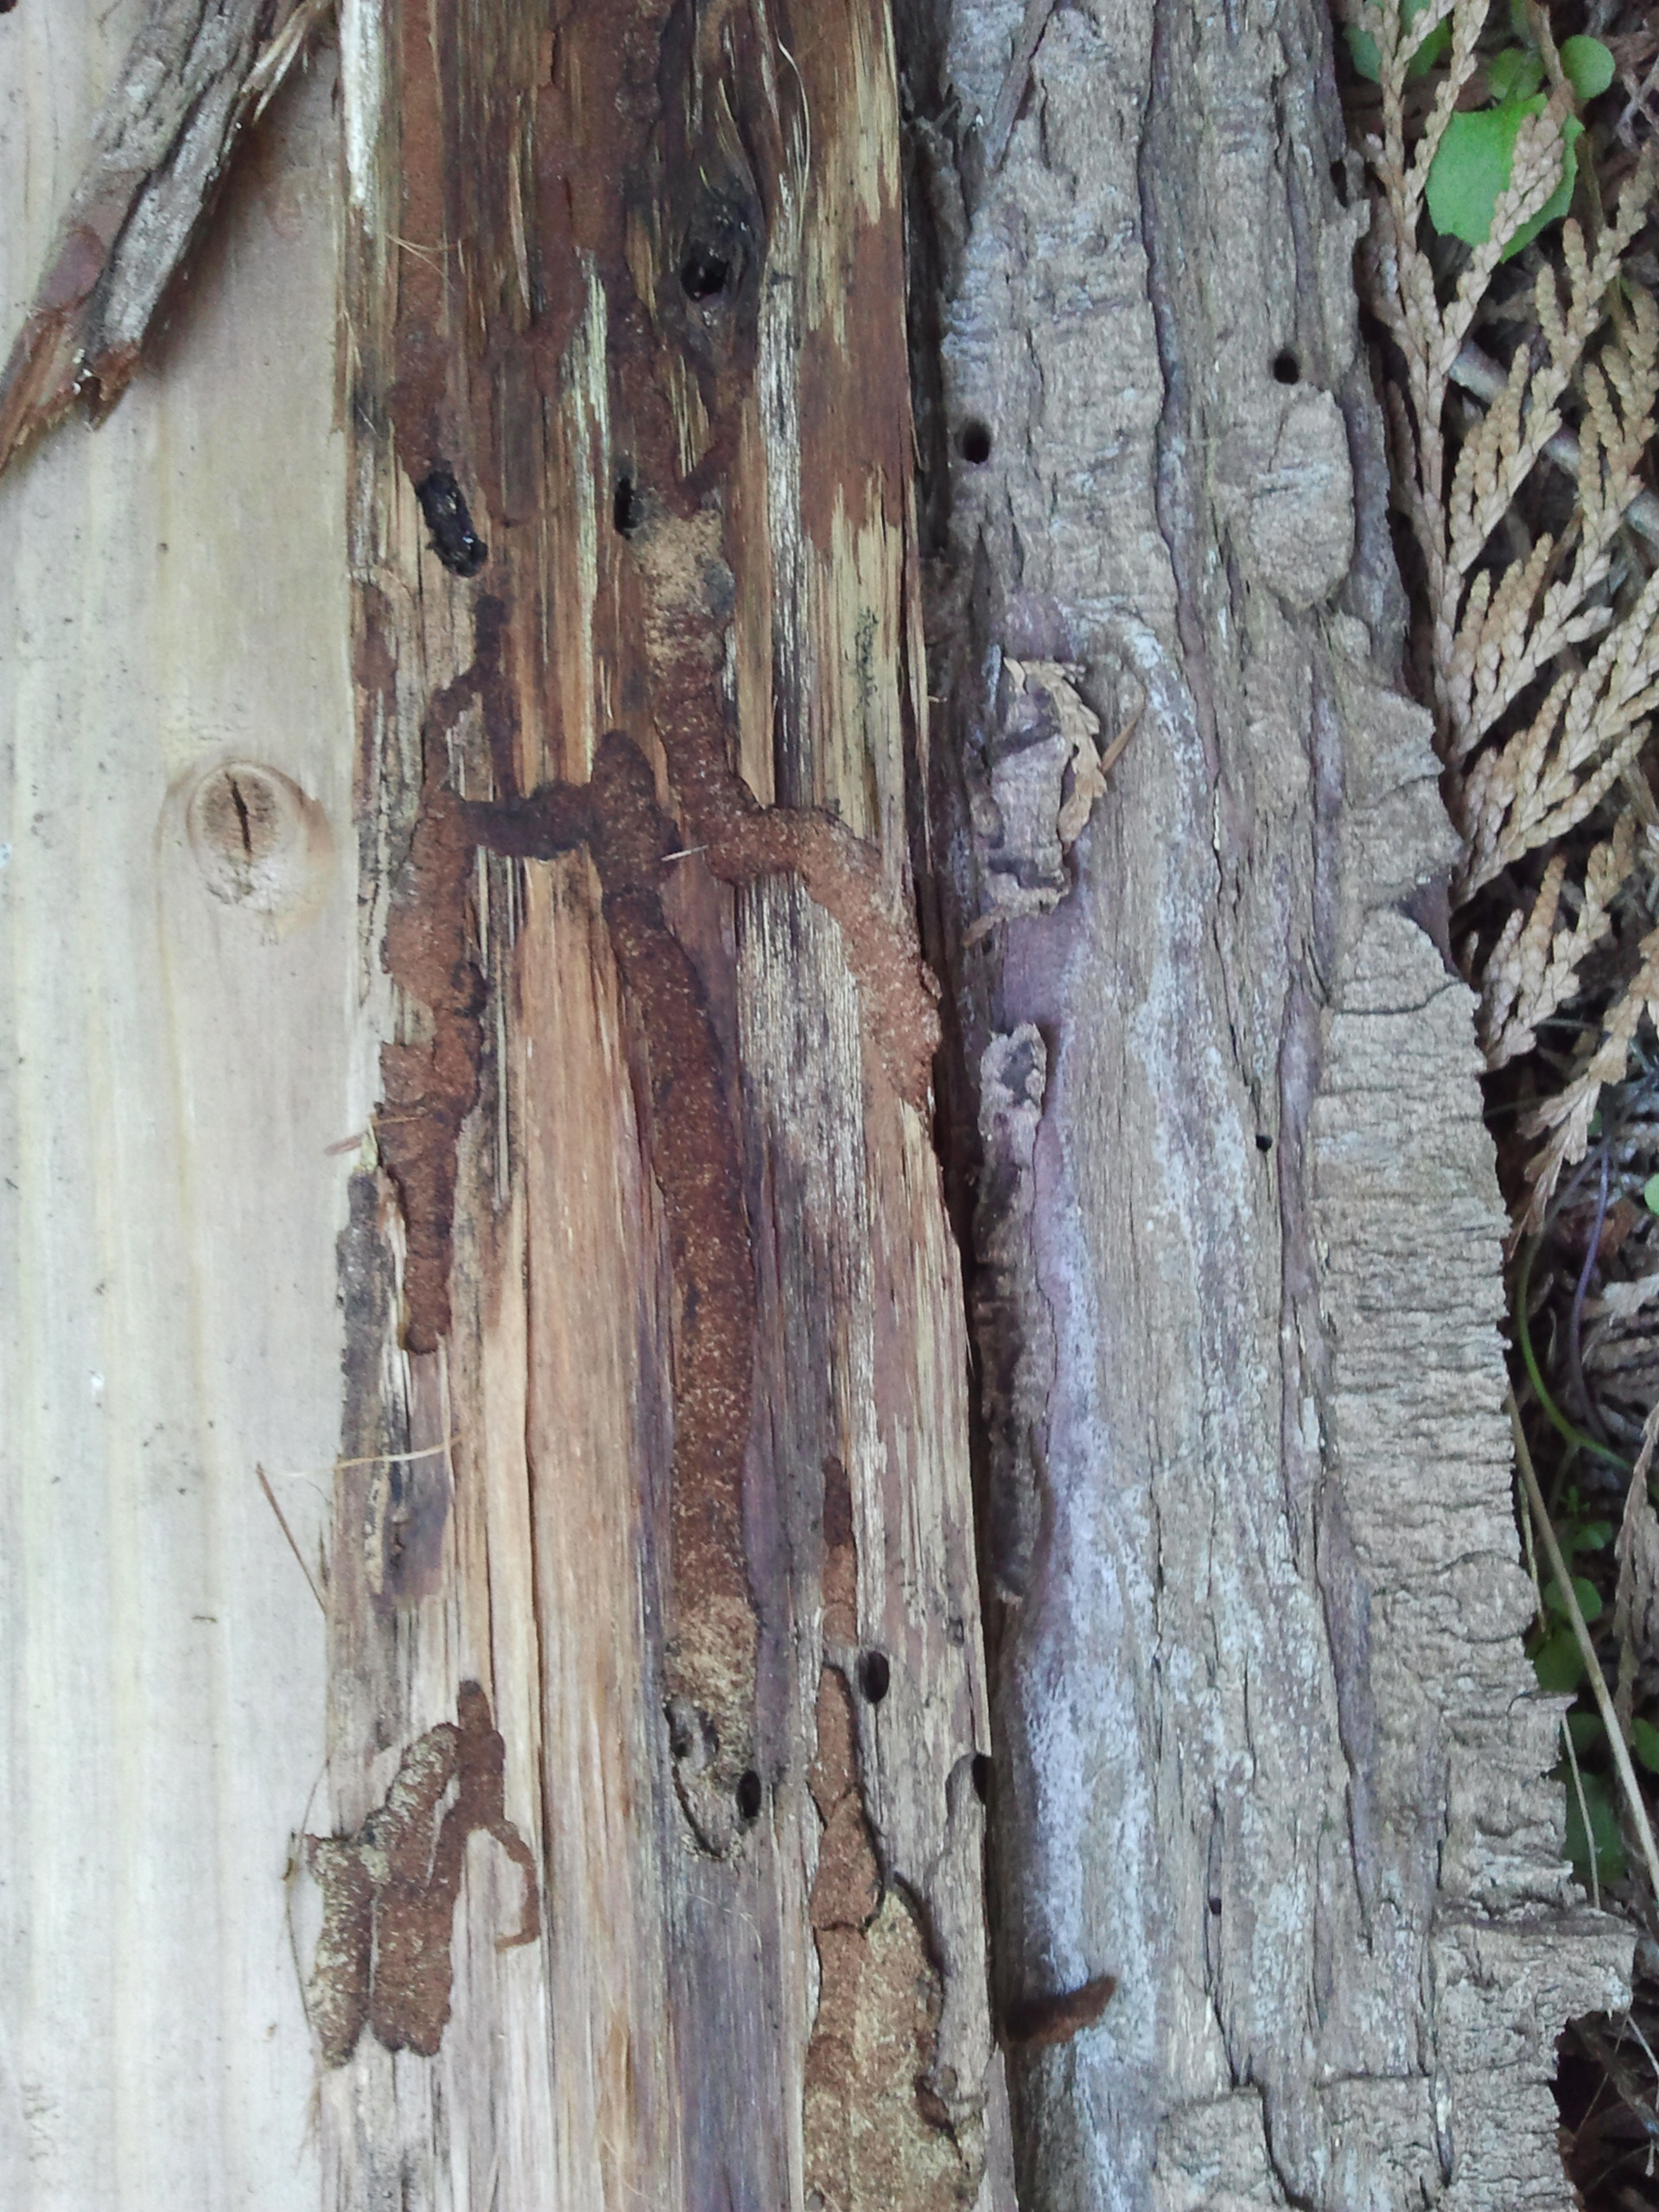 Bark beetle entry holes and galleries